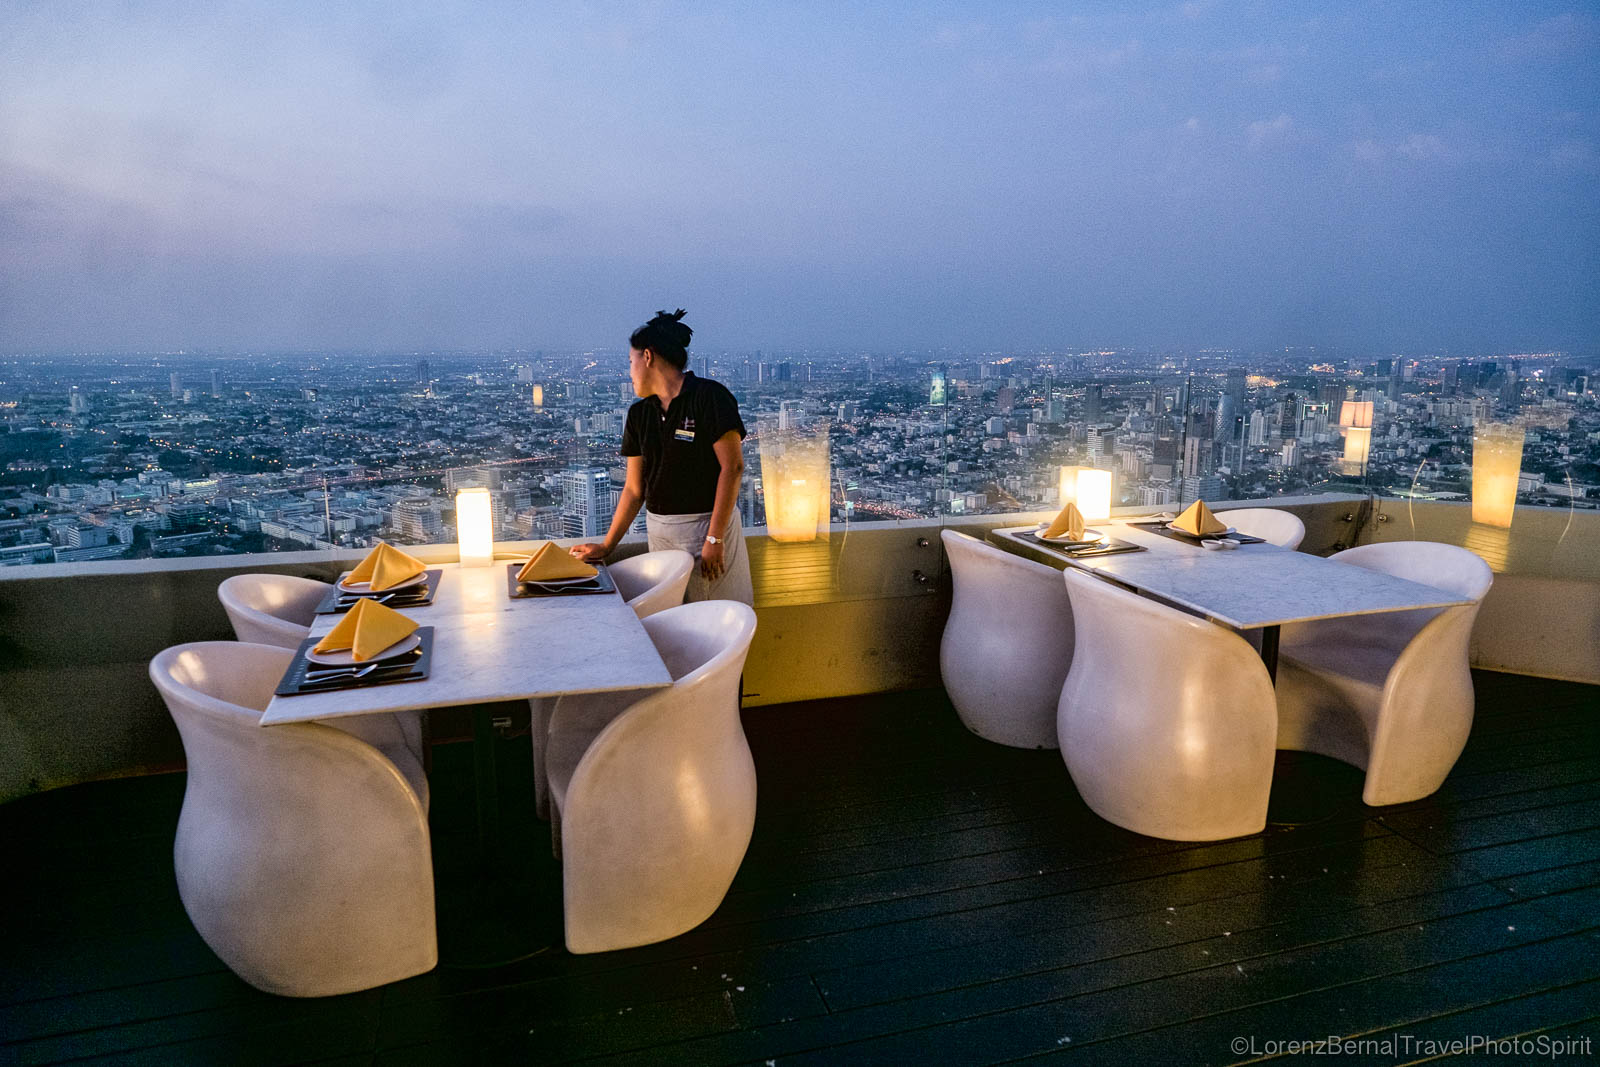 Waitress lost in her thoughts above the city, on the top floor restaurant of the Baiyoke Sky Tower in Bangkok.